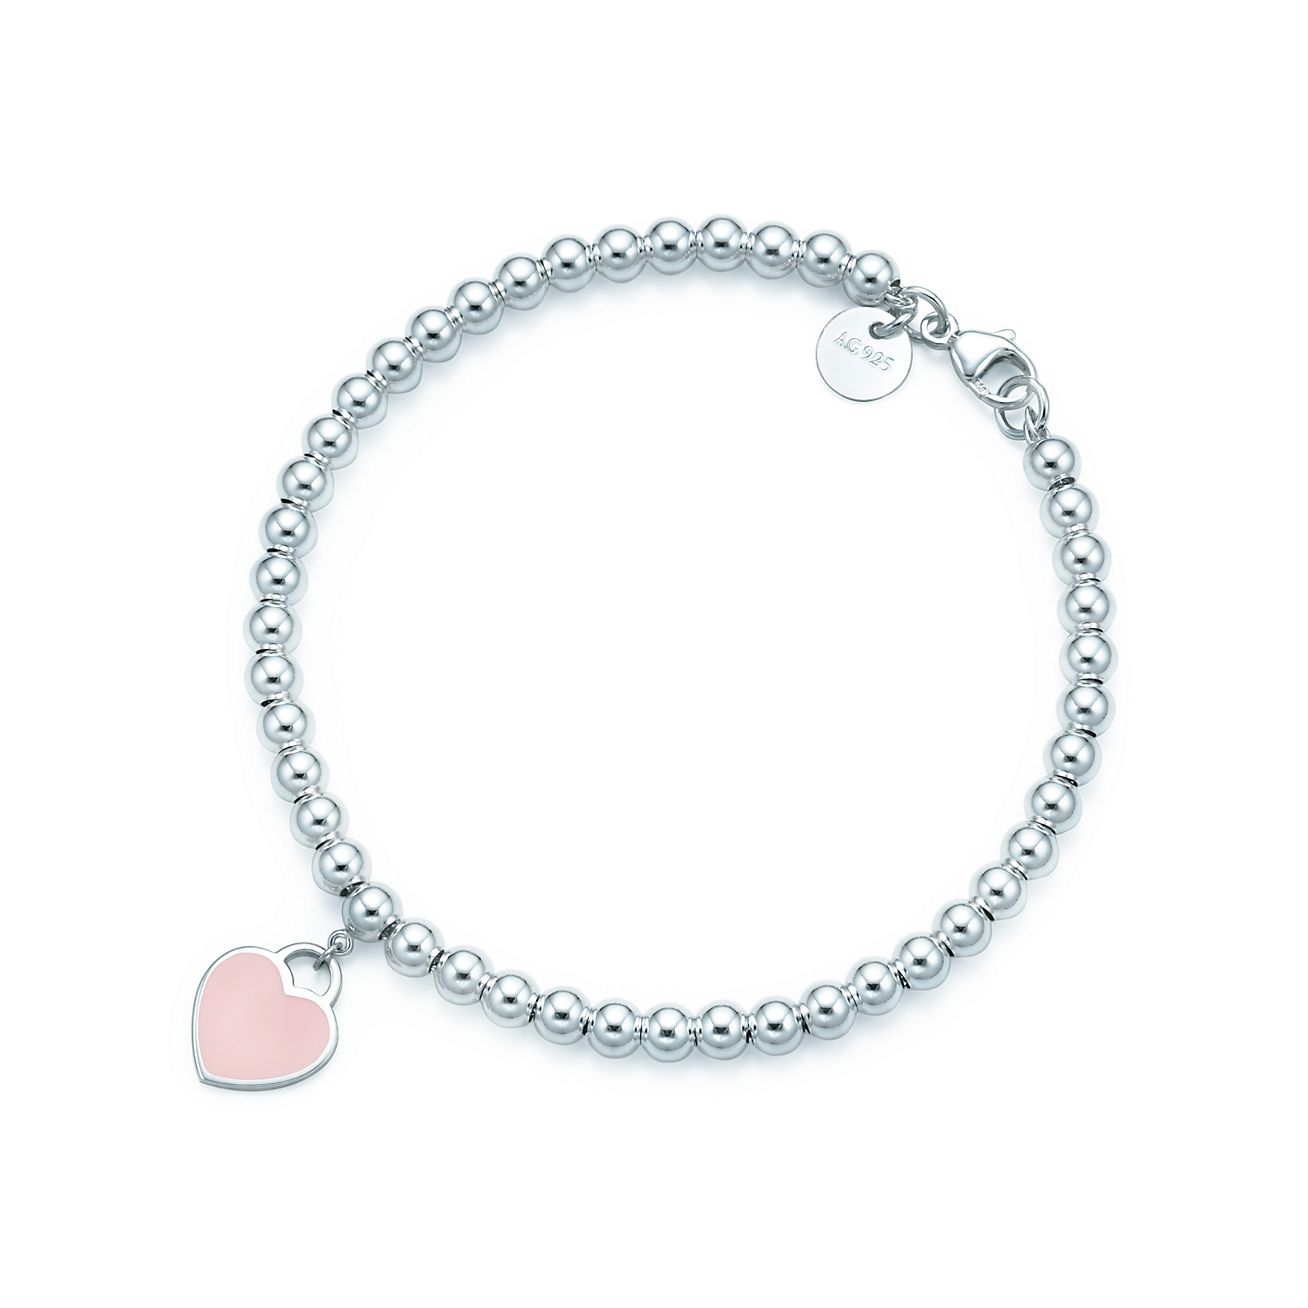 bracelets heart pink clear bangles xmax proud love nurse collections products bracelet blue pendant rhinestone gearessence charm crystal party gifts silver